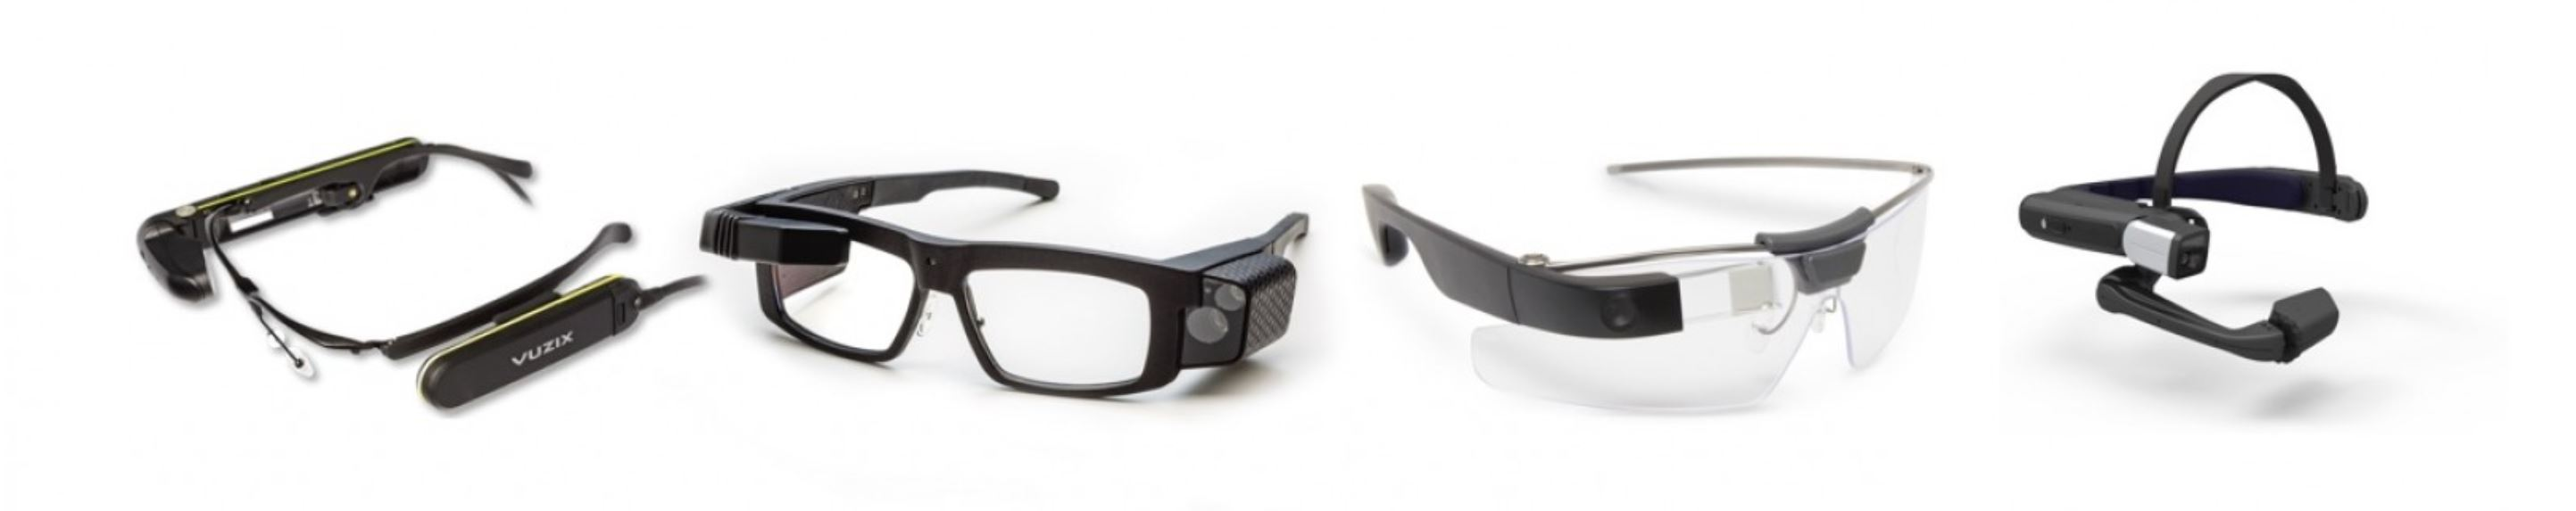 Smart glasses: Vuzix M300, Iristick.Z1, Glass Enterprise and Realwear-HMT1